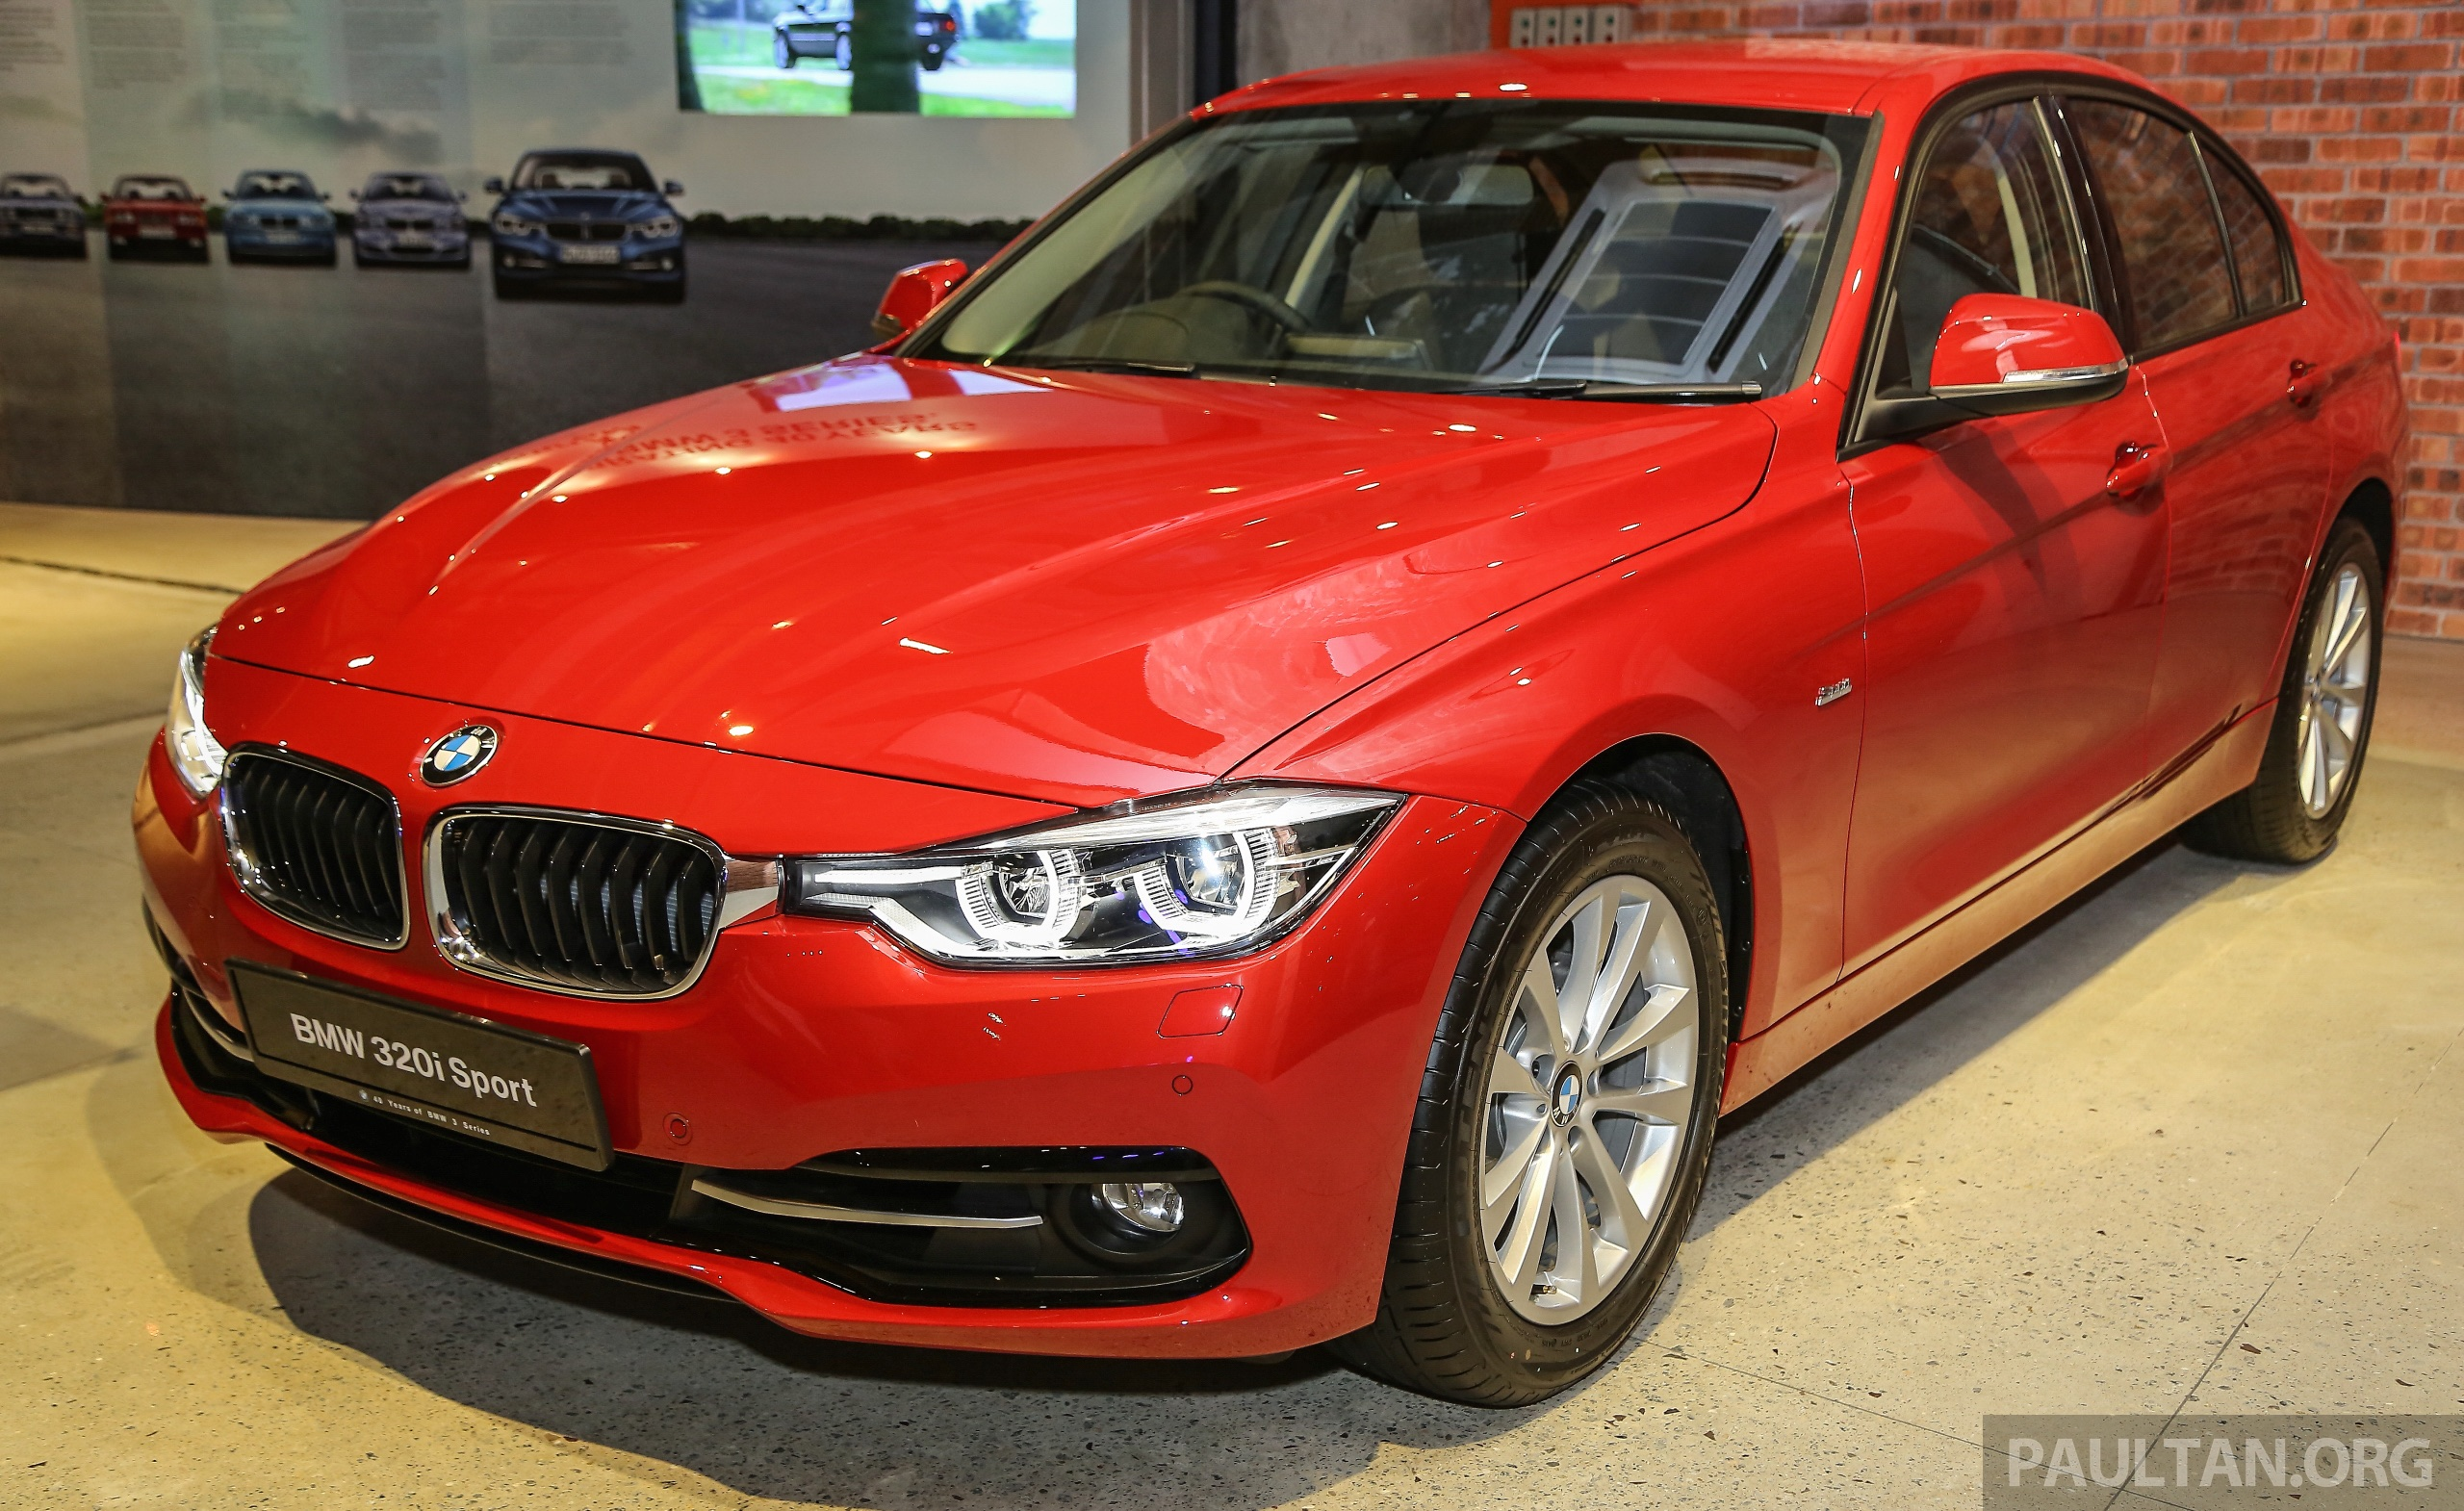 f30 bmw 3 series lci launched in malaysia 3 cyl 318i 320i 320d and 330i from rm209k to. Black Bedroom Furniture Sets. Home Design Ideas